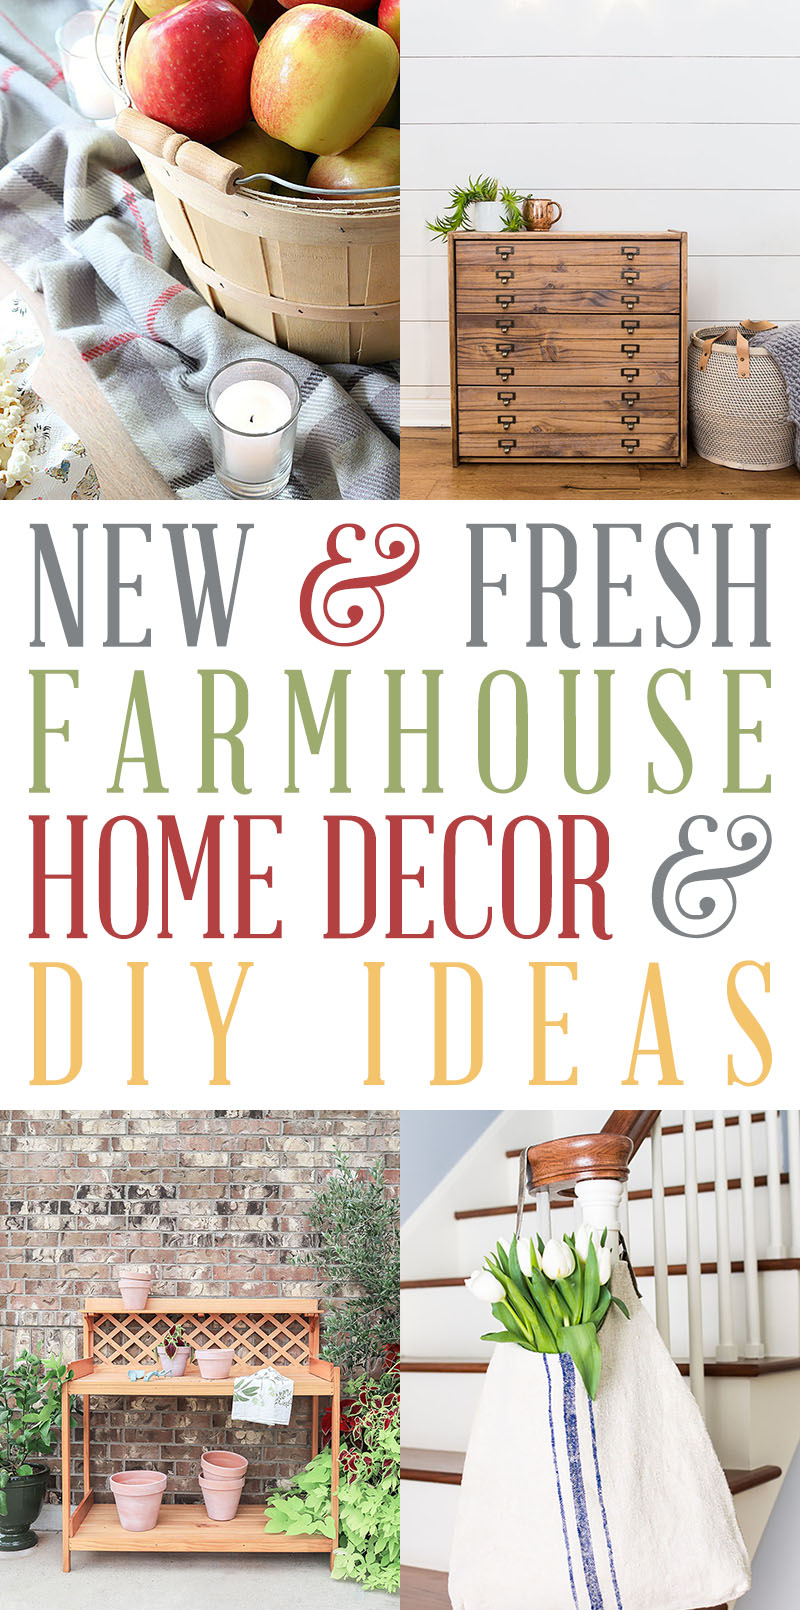 Farmhouse Decor DIY Ideas Fresh from the most fabulous Farmhouse Blog! Come and see what is happening in the Farmhouse Blogosphere!